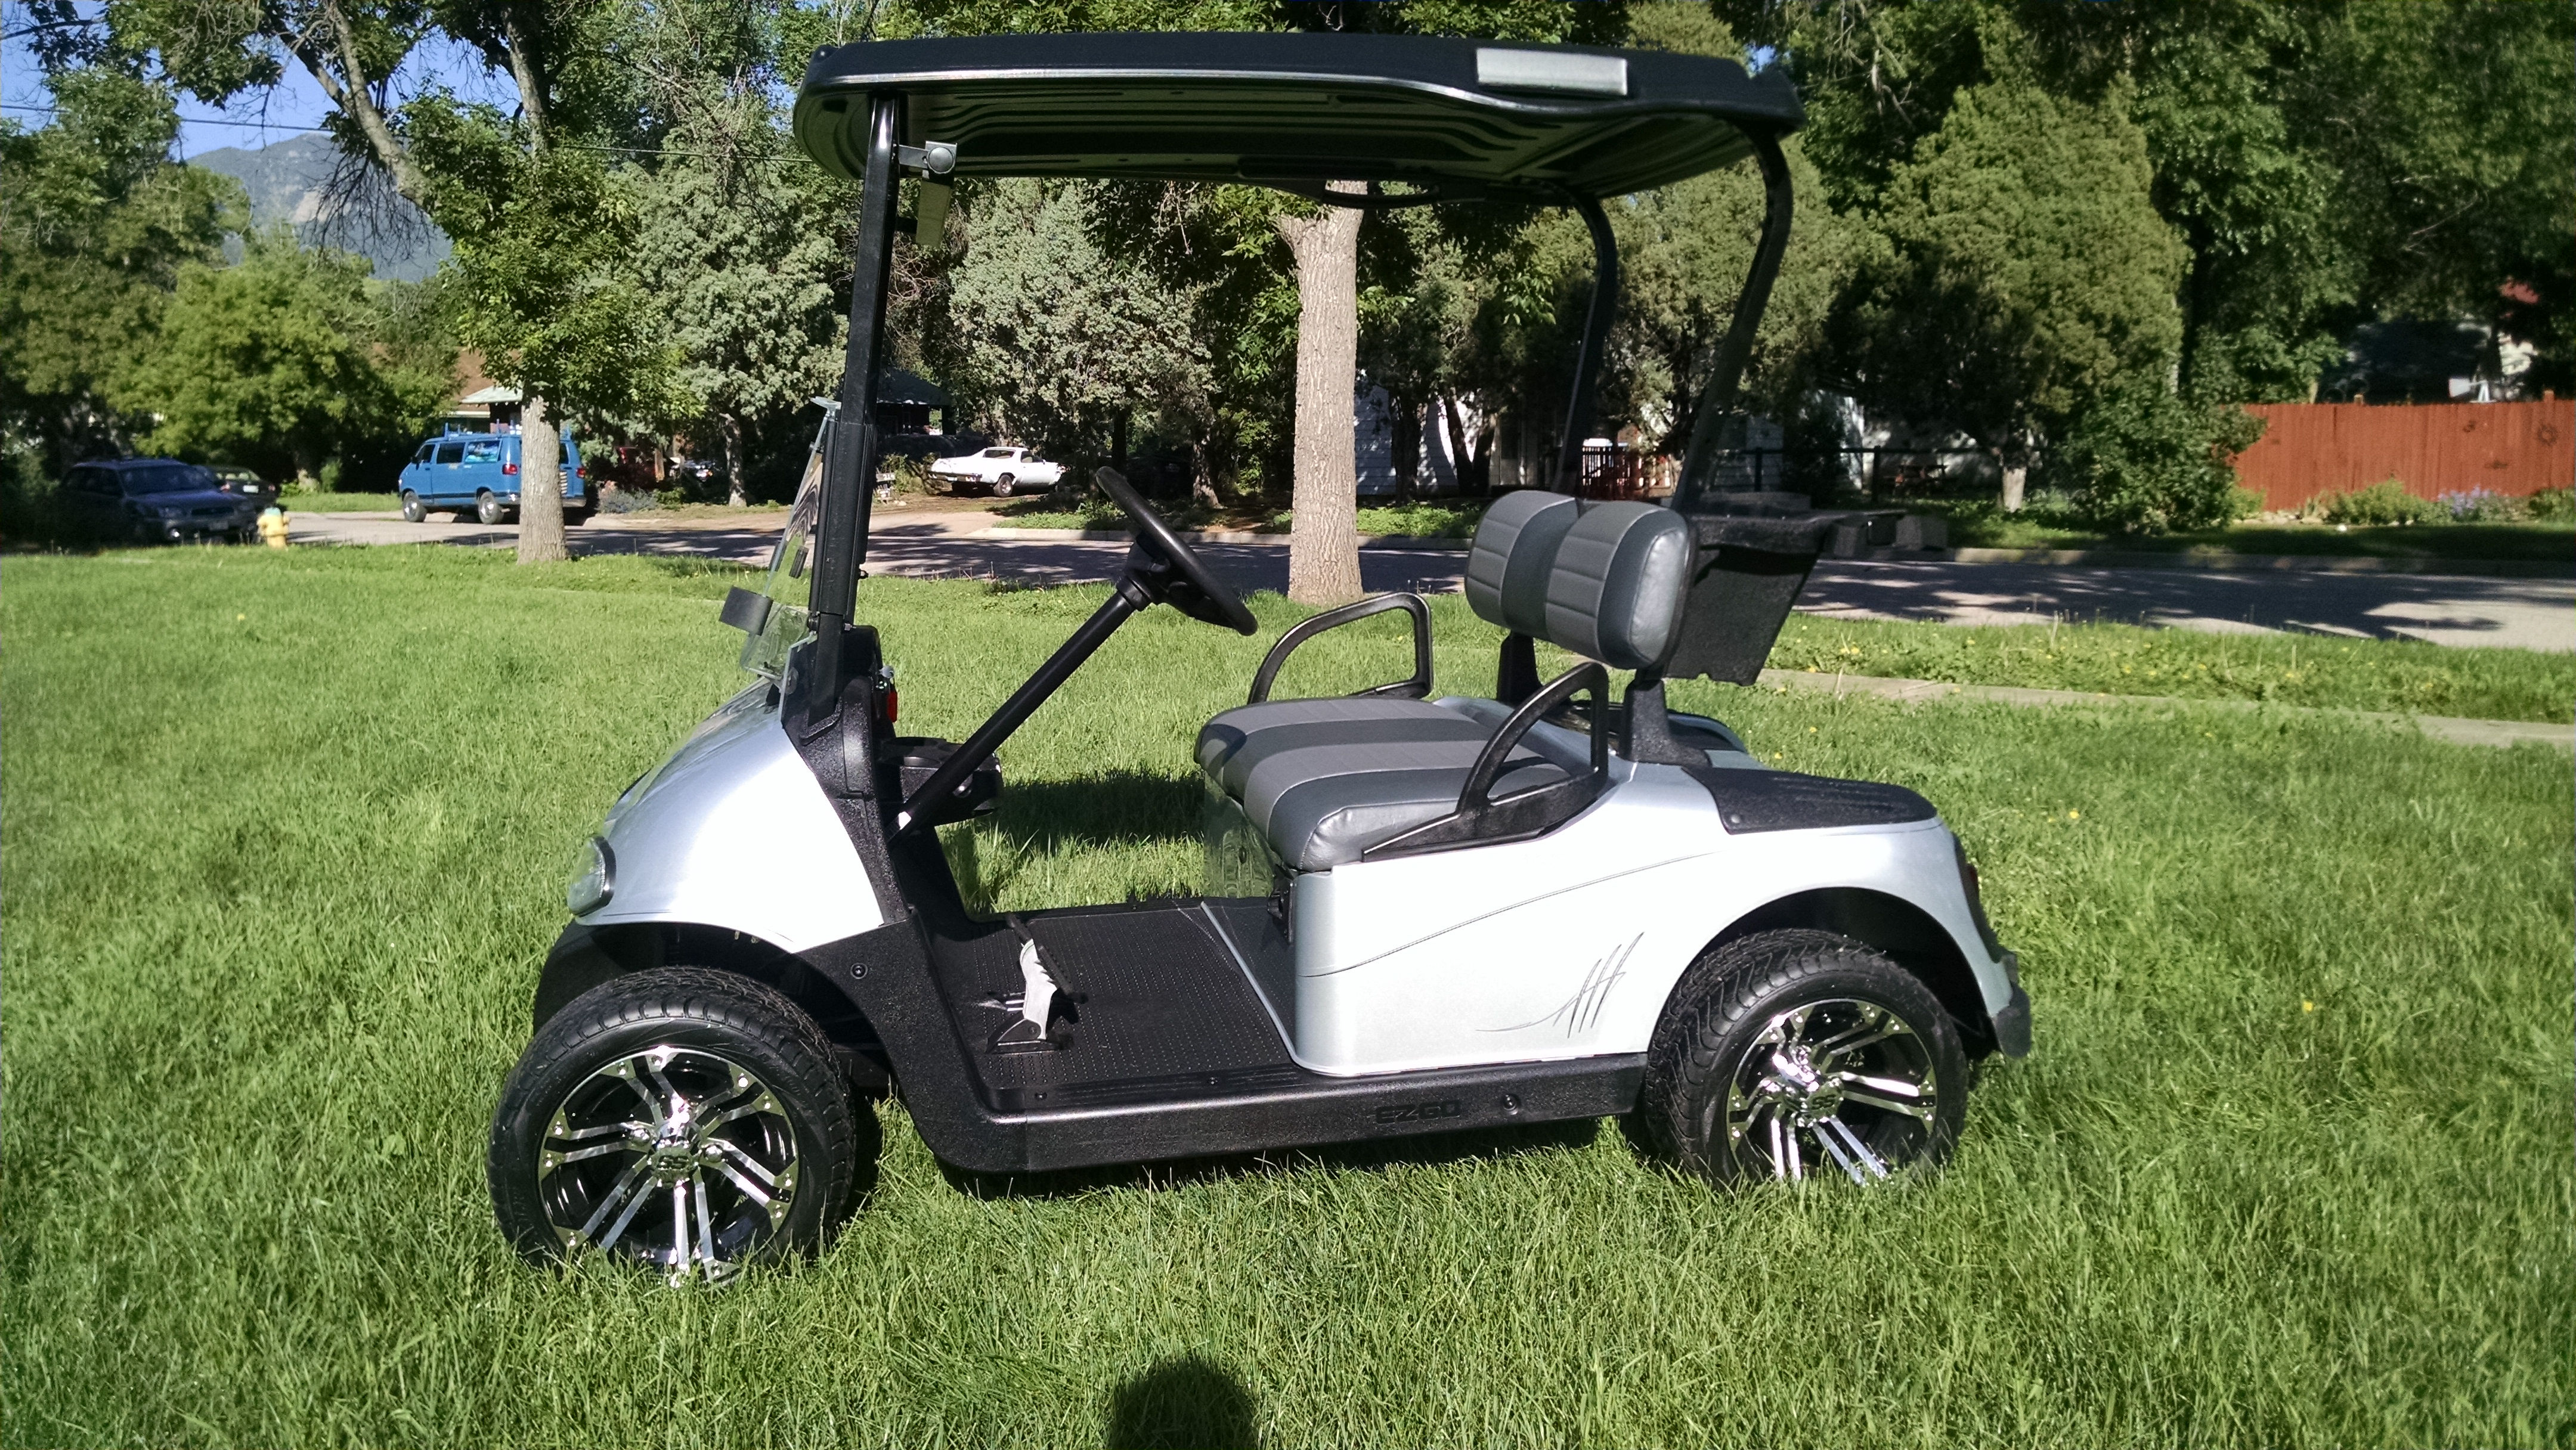 ez go gas golf cart with Platinum Rxv Custom 5995 on 302260040300 together with Platinum Rxv Custom 5995 also Acp Custom California Roadster Golf Cart Cruiser furthermore Golf Cart Portable Propane Heater With Cup Holder likewise Watch.